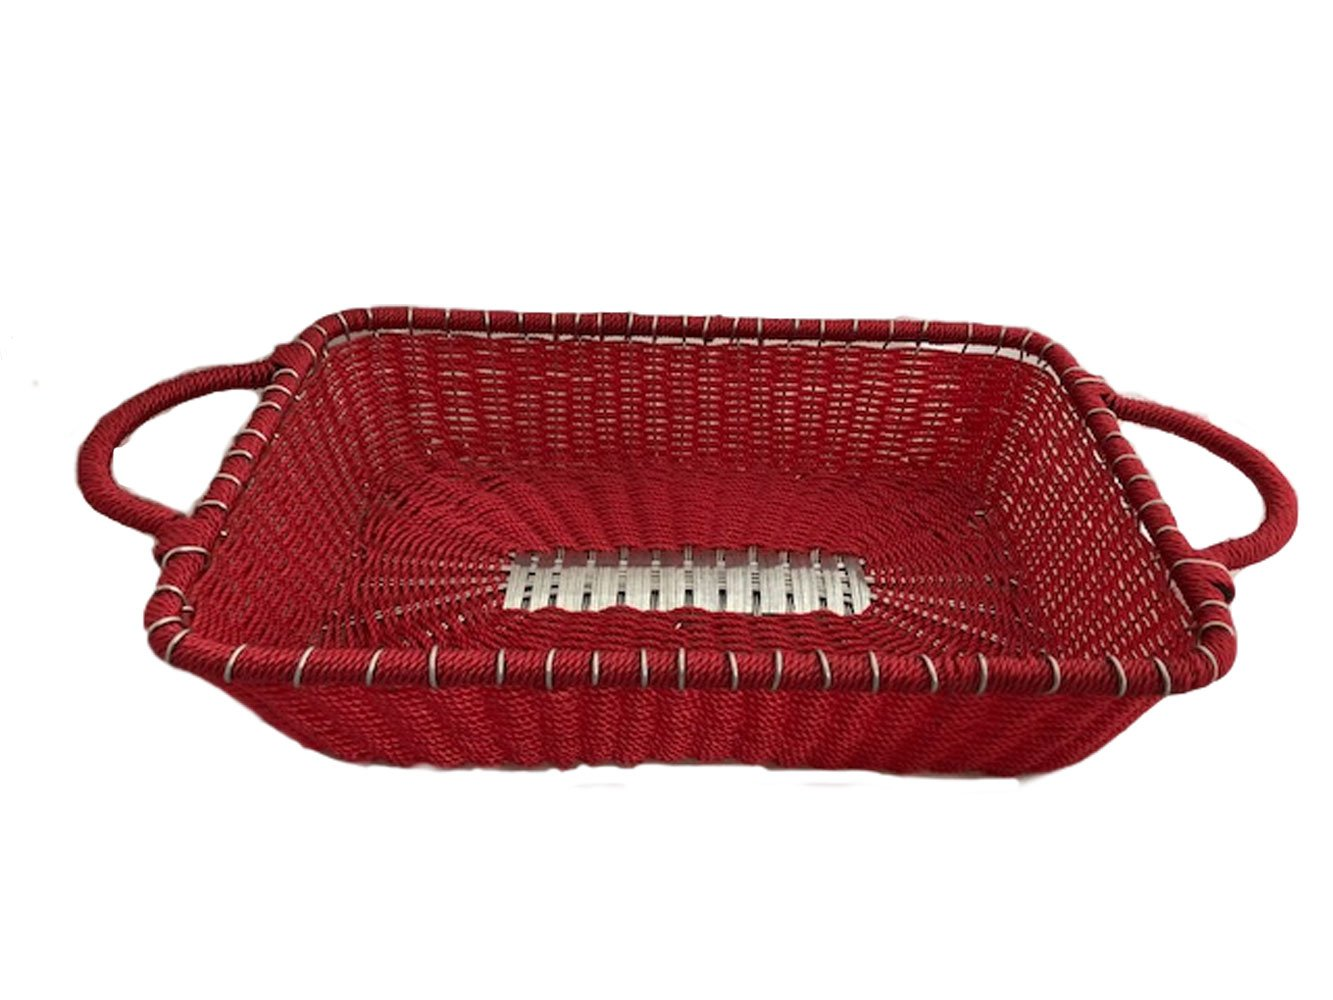 India Handicrafts IHI Colorful Pyrex Holder Basket (Red)